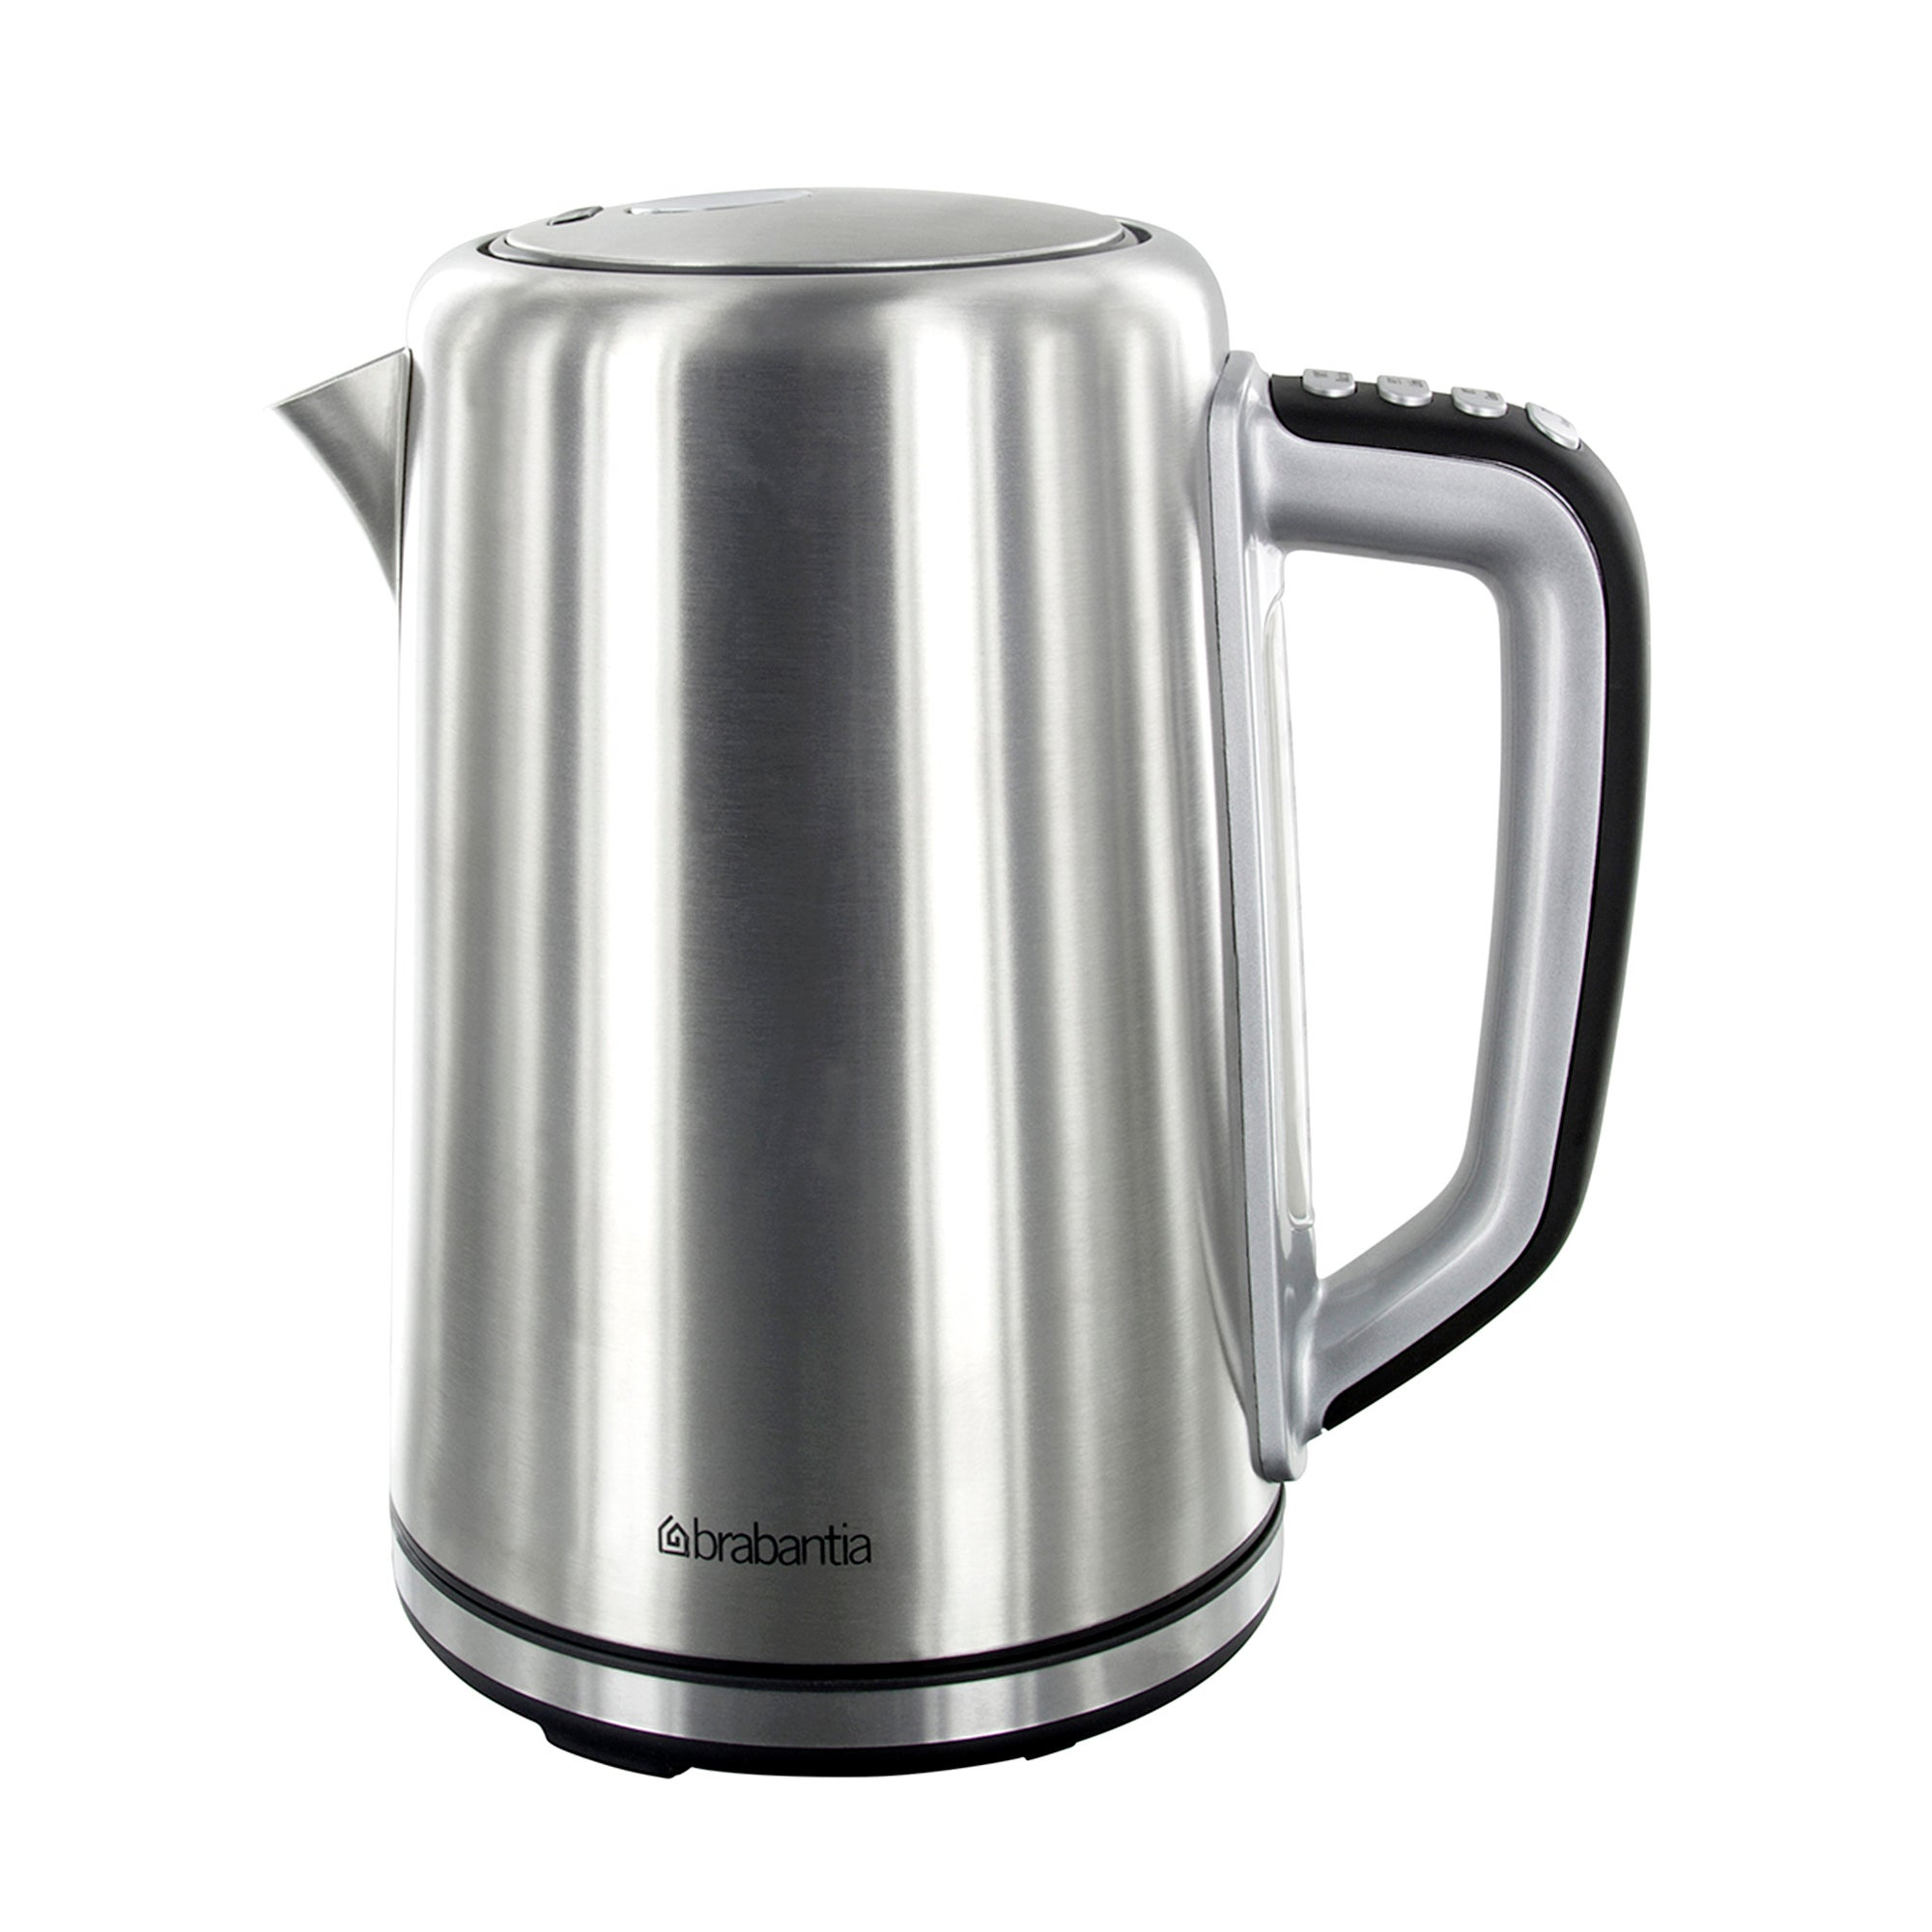 Brabantia Stainless Steel Soft Grip Digital Kettle